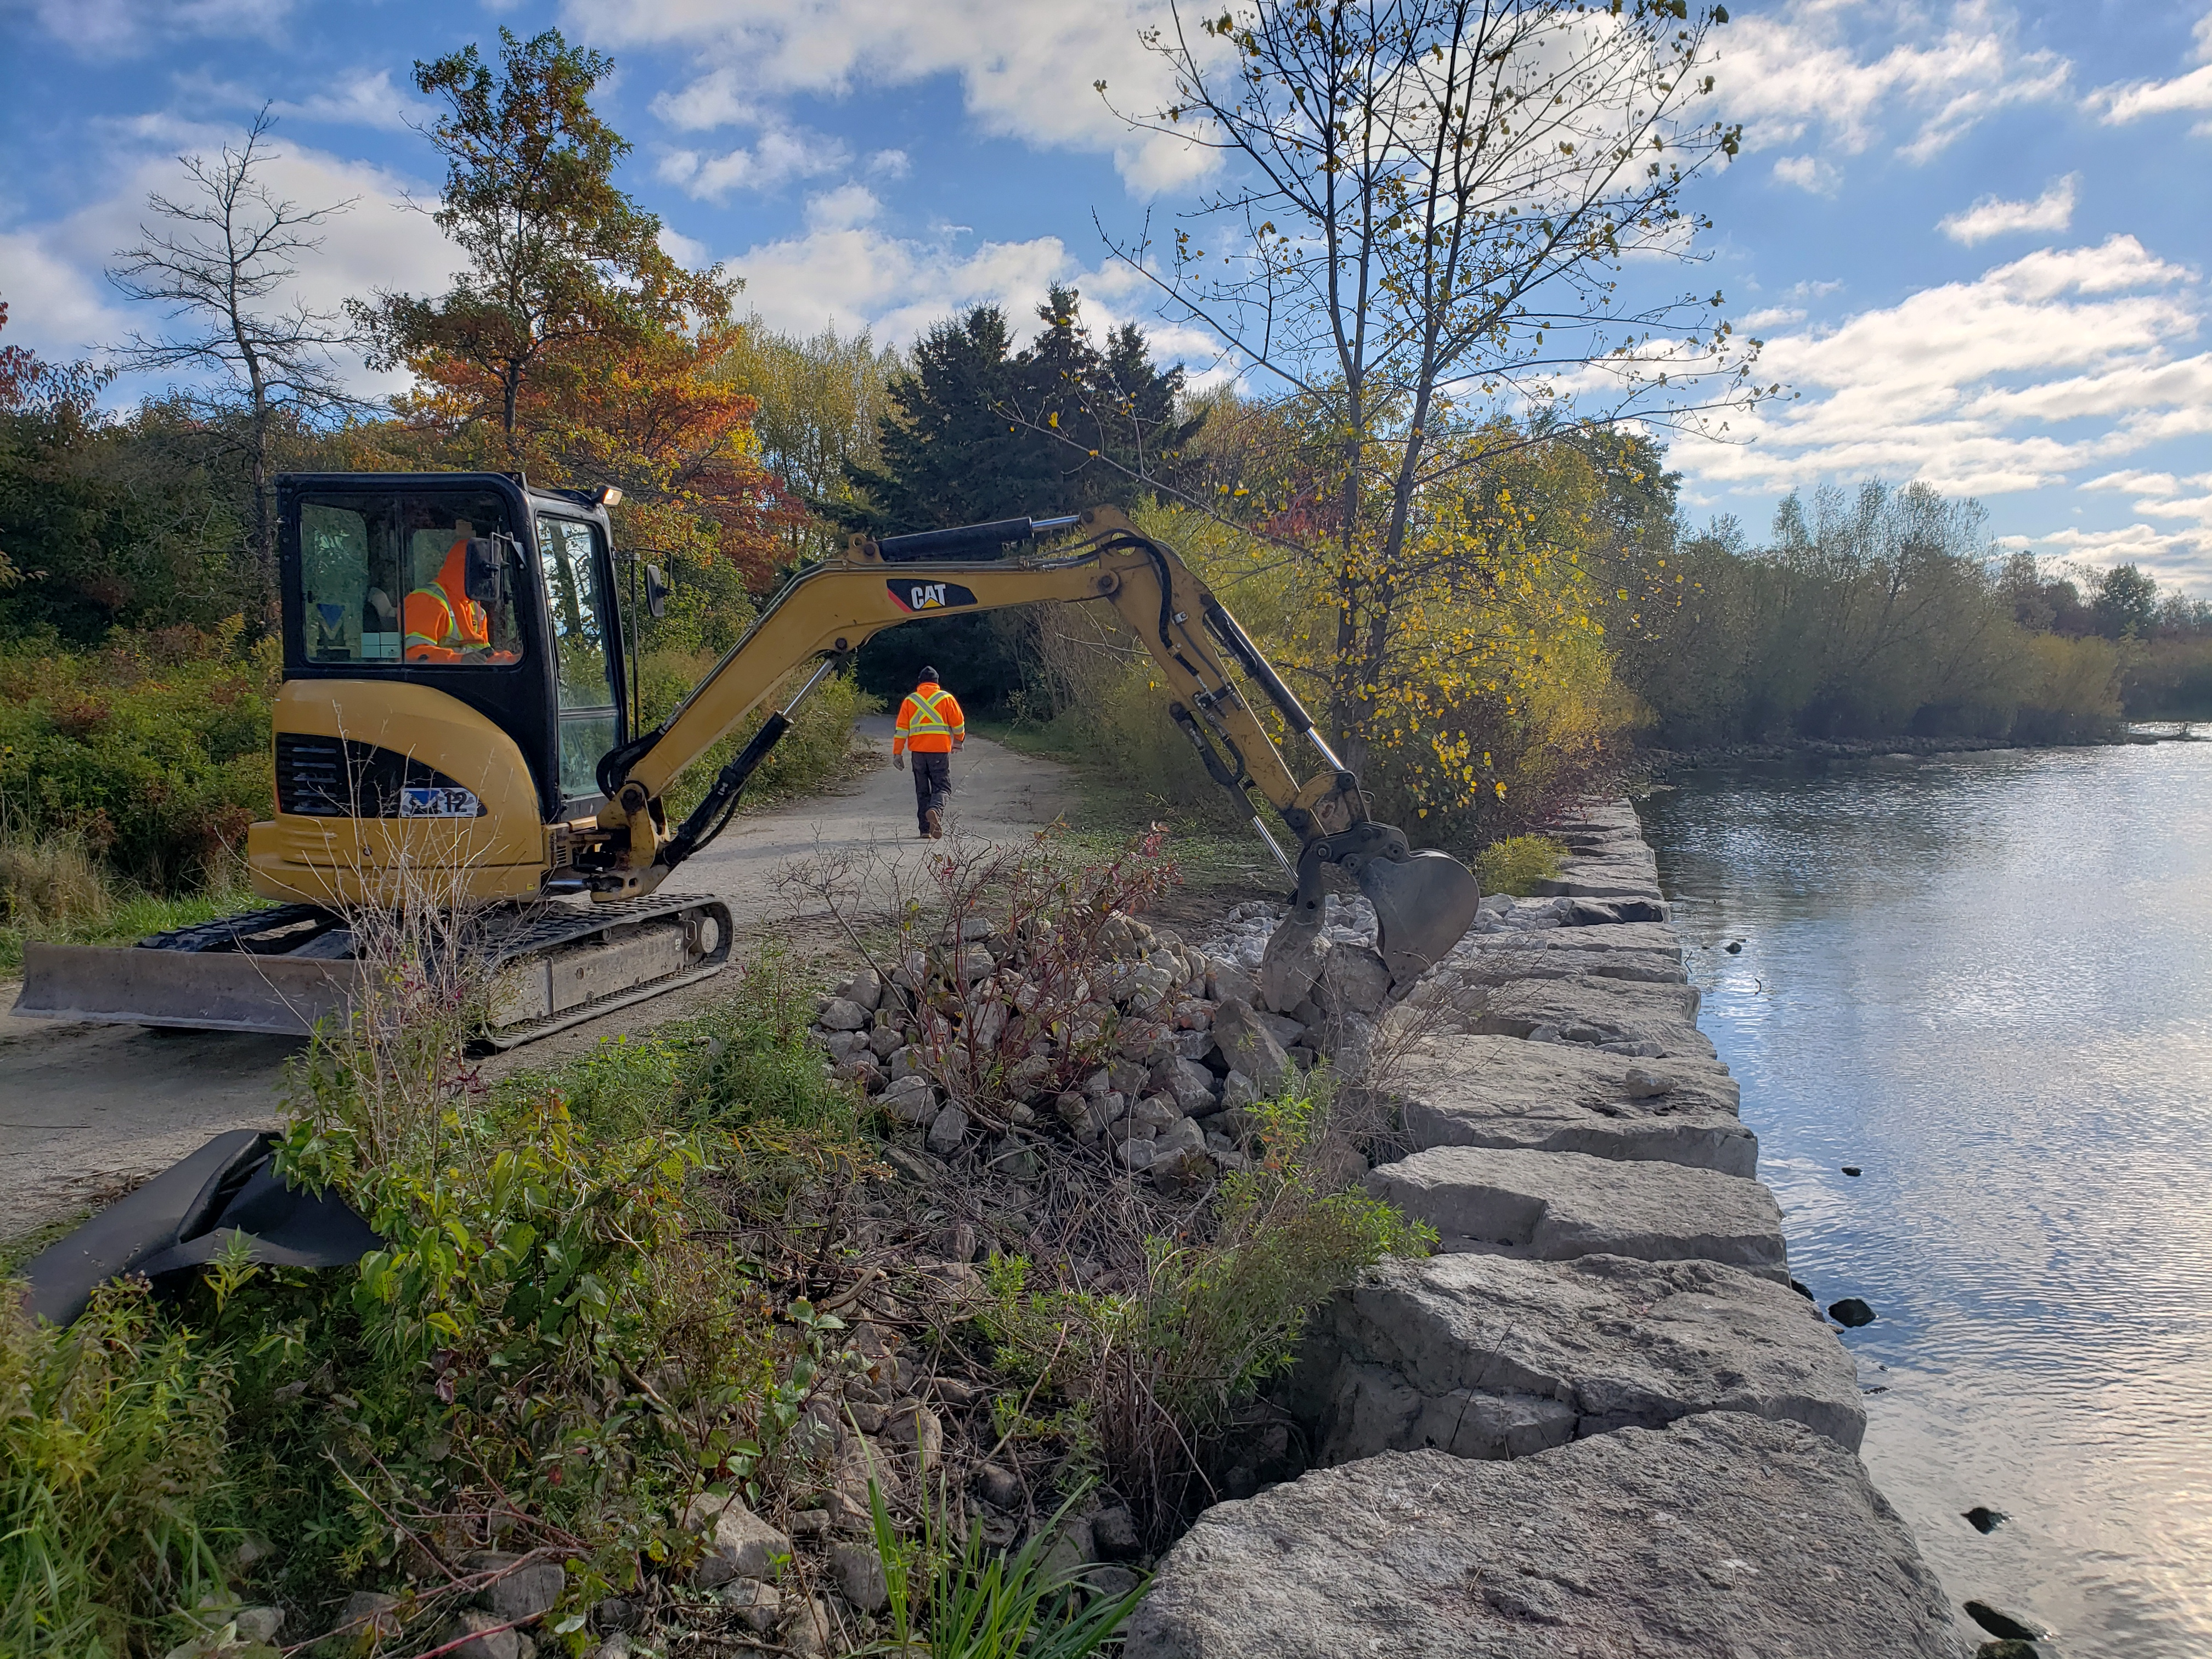 TRCA construction crews beginning to place rip rap along the backshore of the seawall at Colonel Samuel Smith Park. Source: TRCA, 2019.